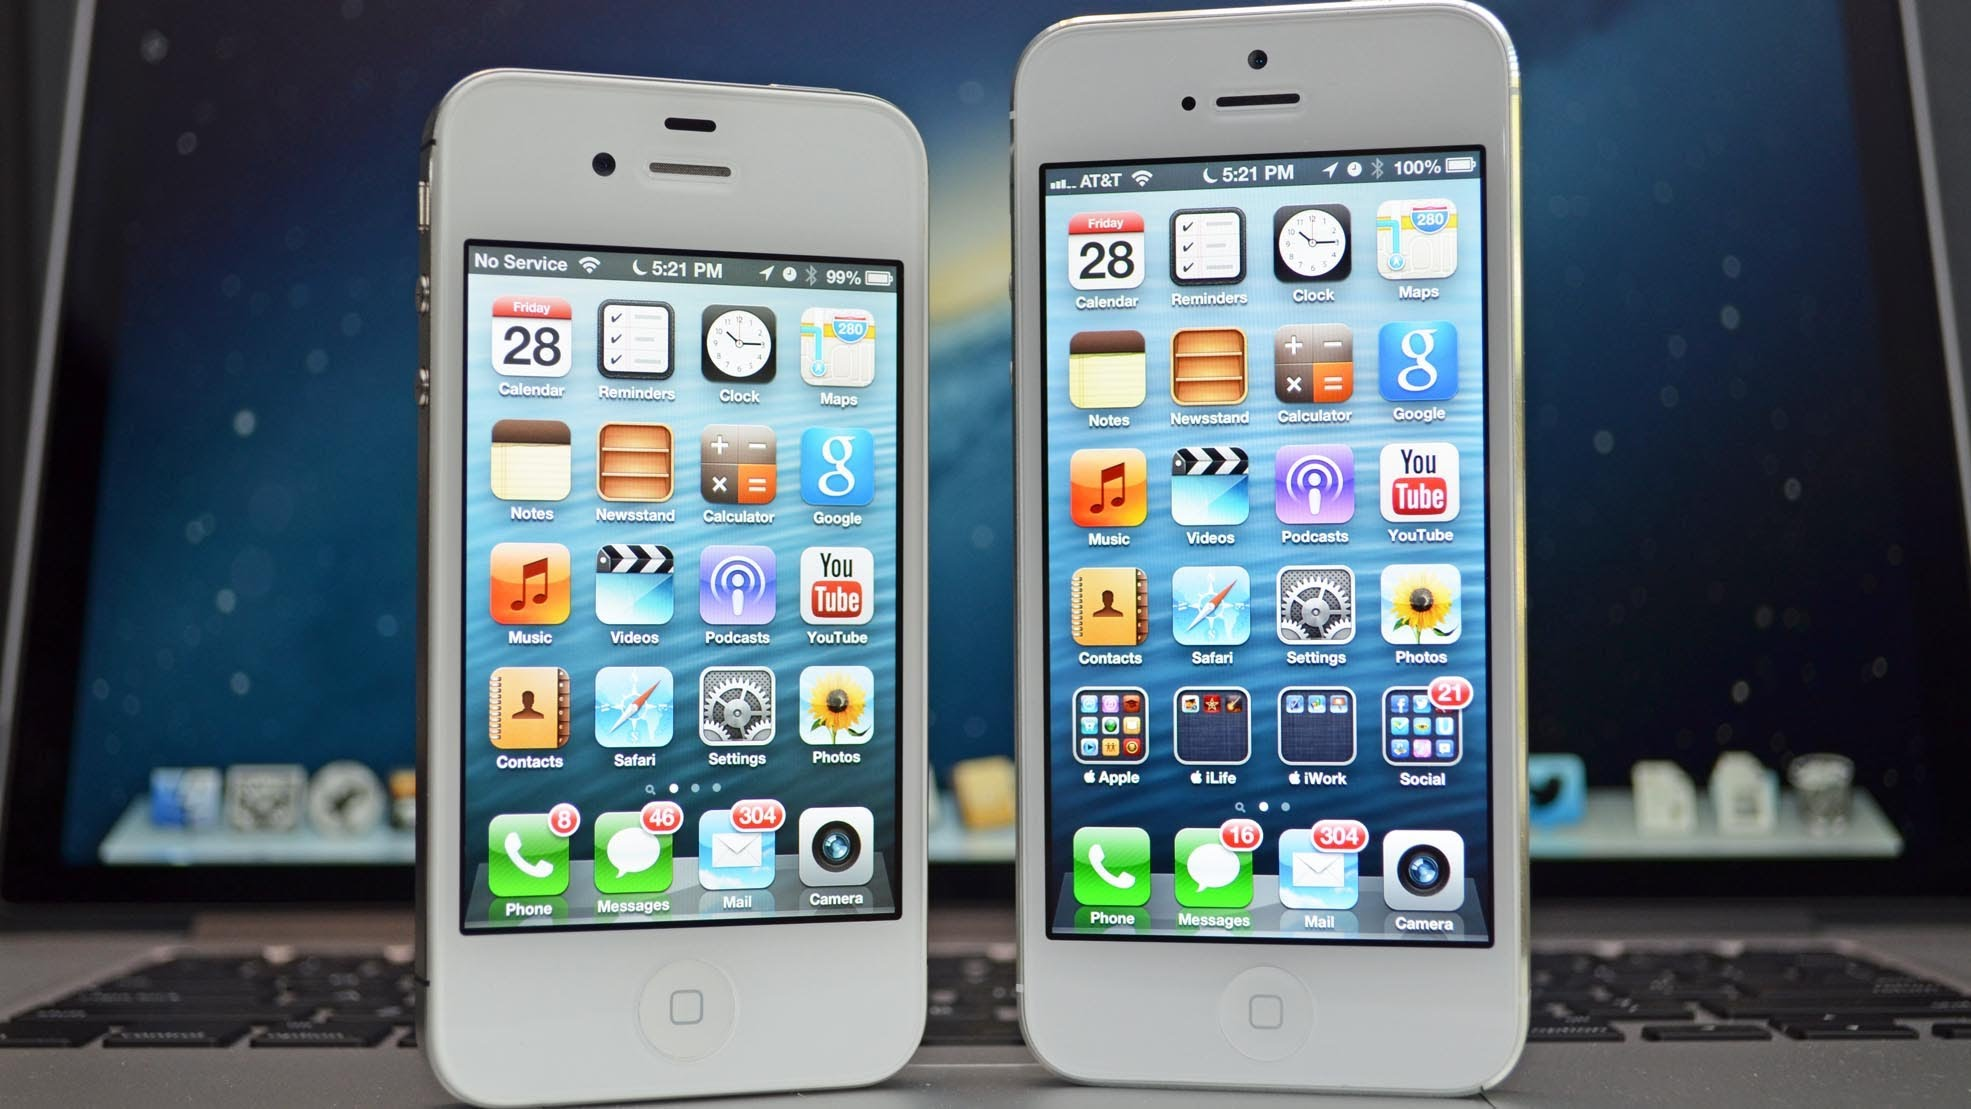 how to spy on iphone 4s without jailbreaking